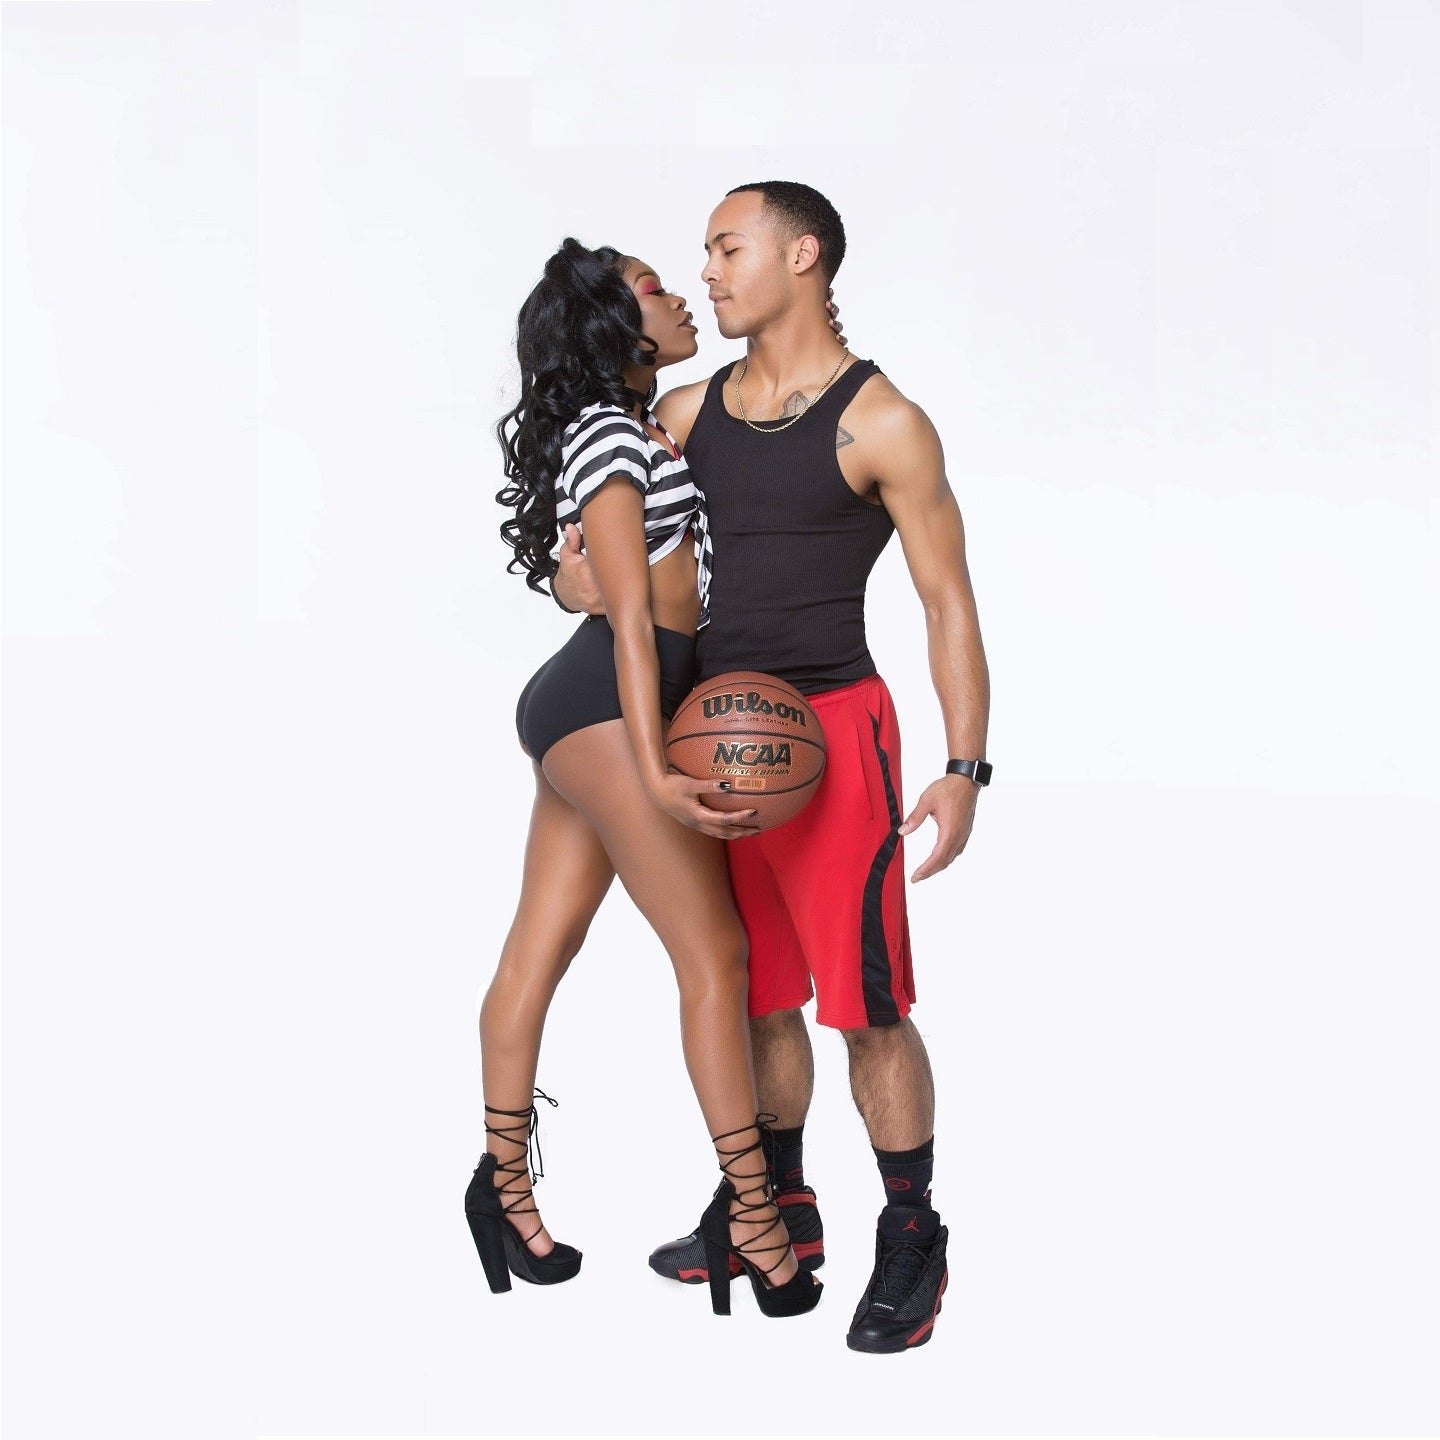 RUDE Presents: Love and Basketball